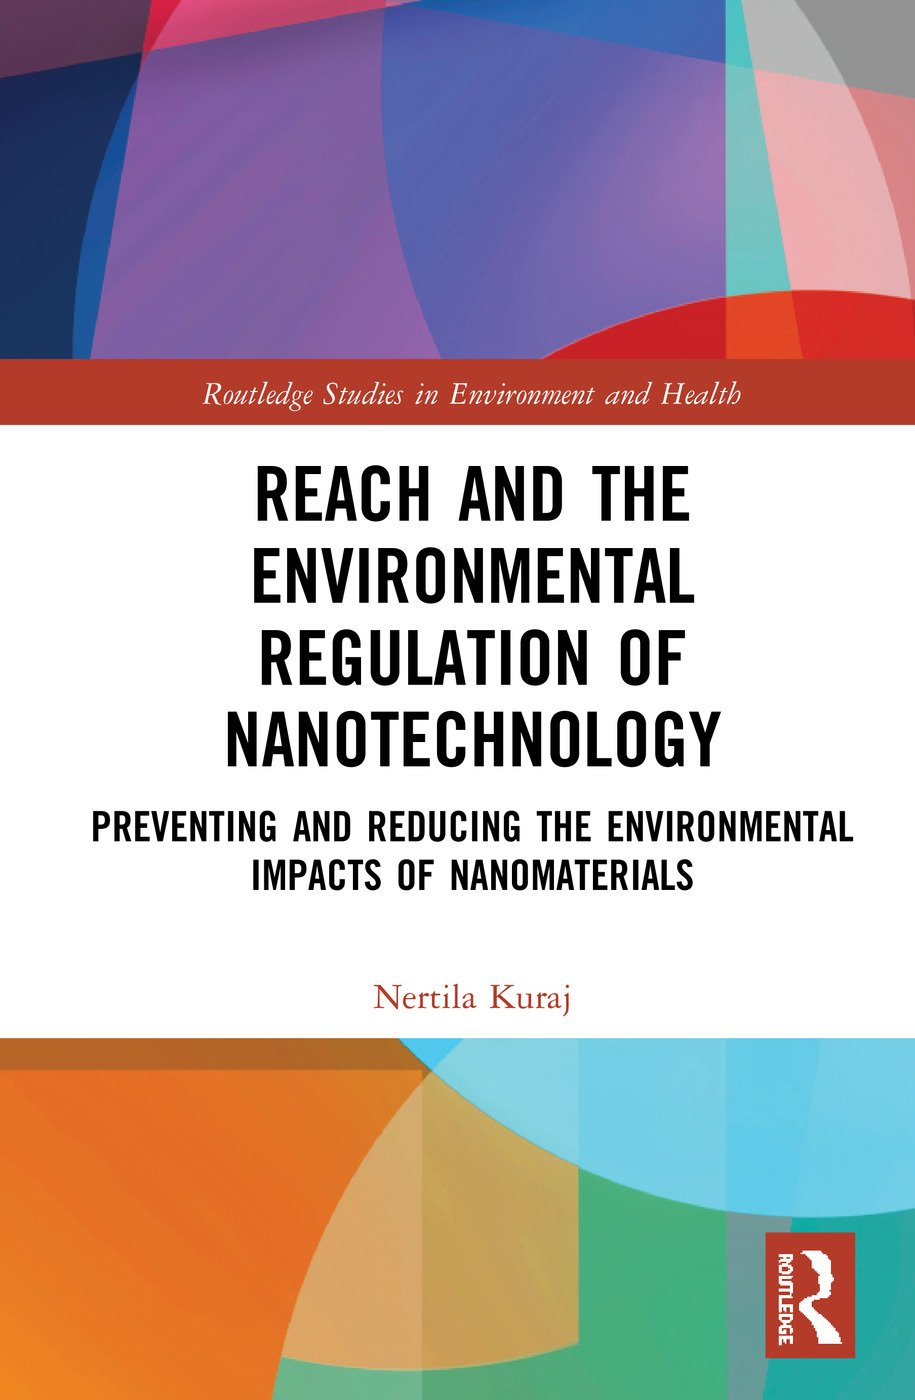 REACH and the Environmental Regulation of Nanotechnology: Preventing and Reducing the Environmental Impacts of Nanomaterials book cover